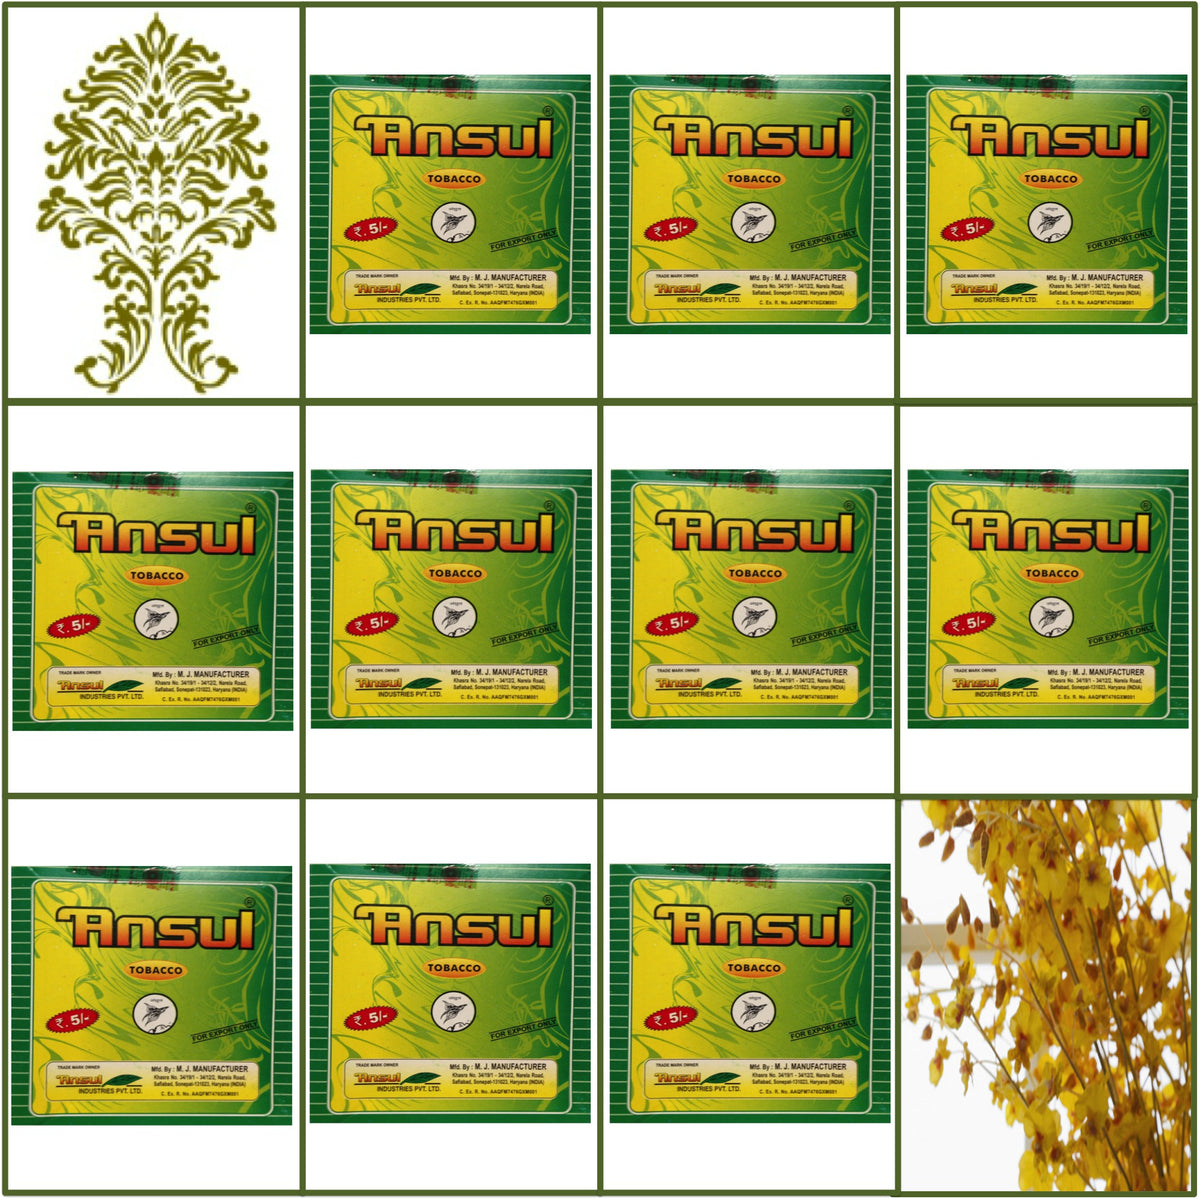 10 Boxes Ansul Tobacco 12 x 13g Each